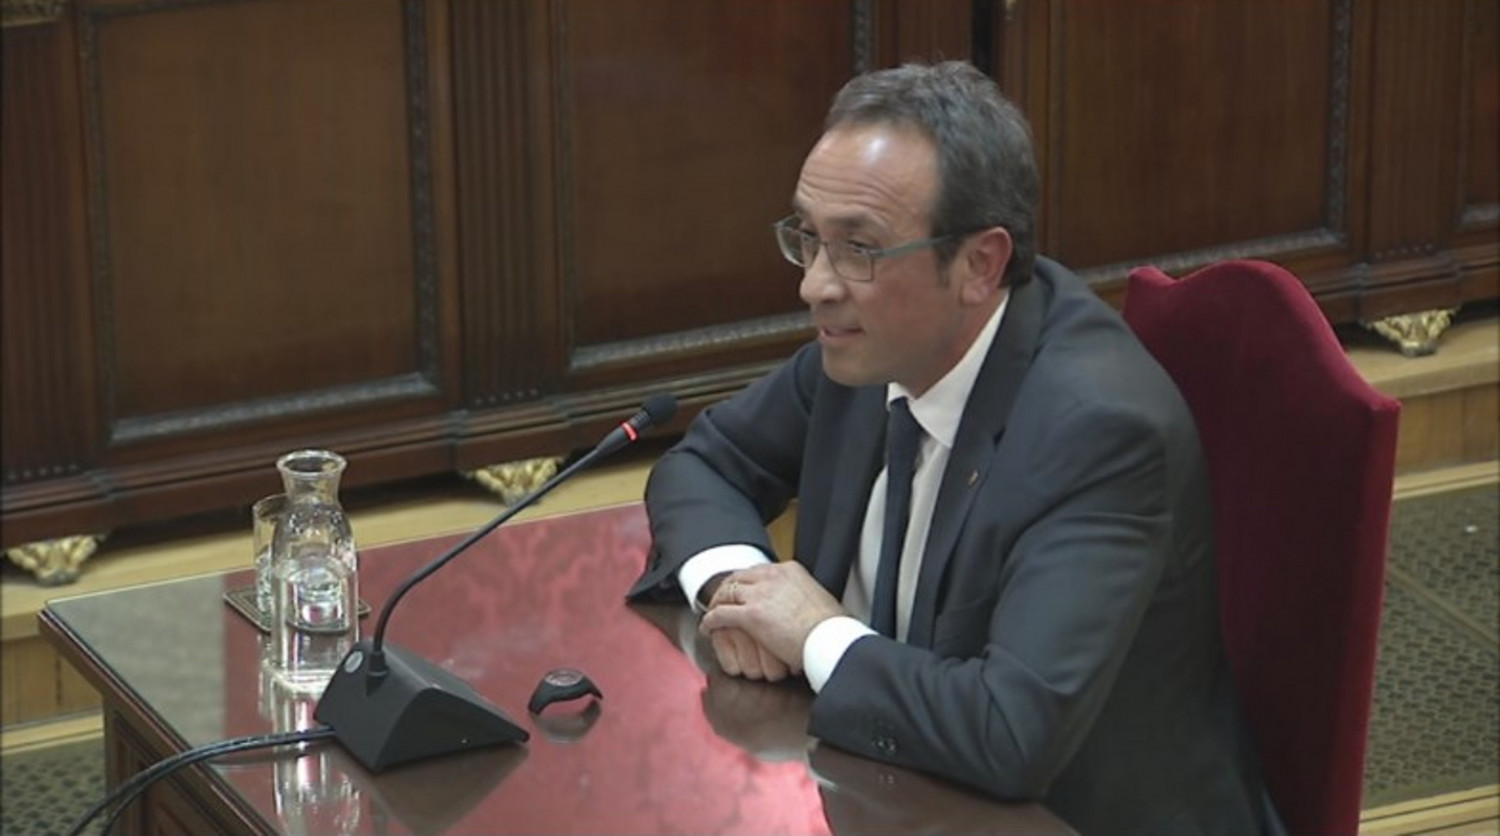 Josep Rull giving his closing statement in Spain's Supreme Court on June 12, 2019 (Supreme Court)